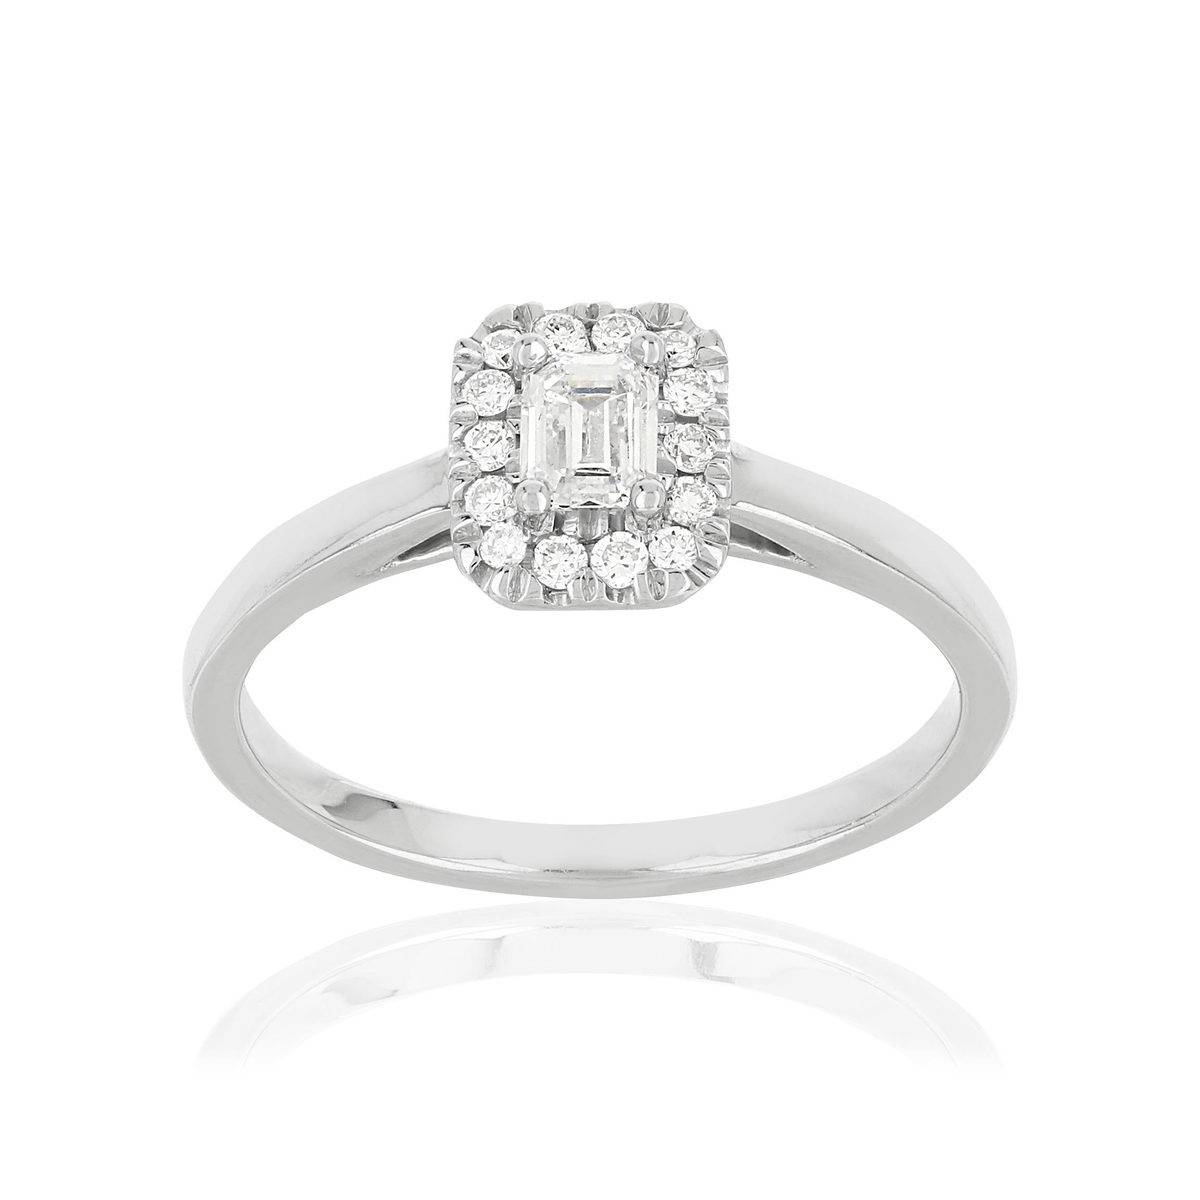 MATY Bague or 750 blanc rectangulaire diamants synthétiques 0,34 carat- MATY